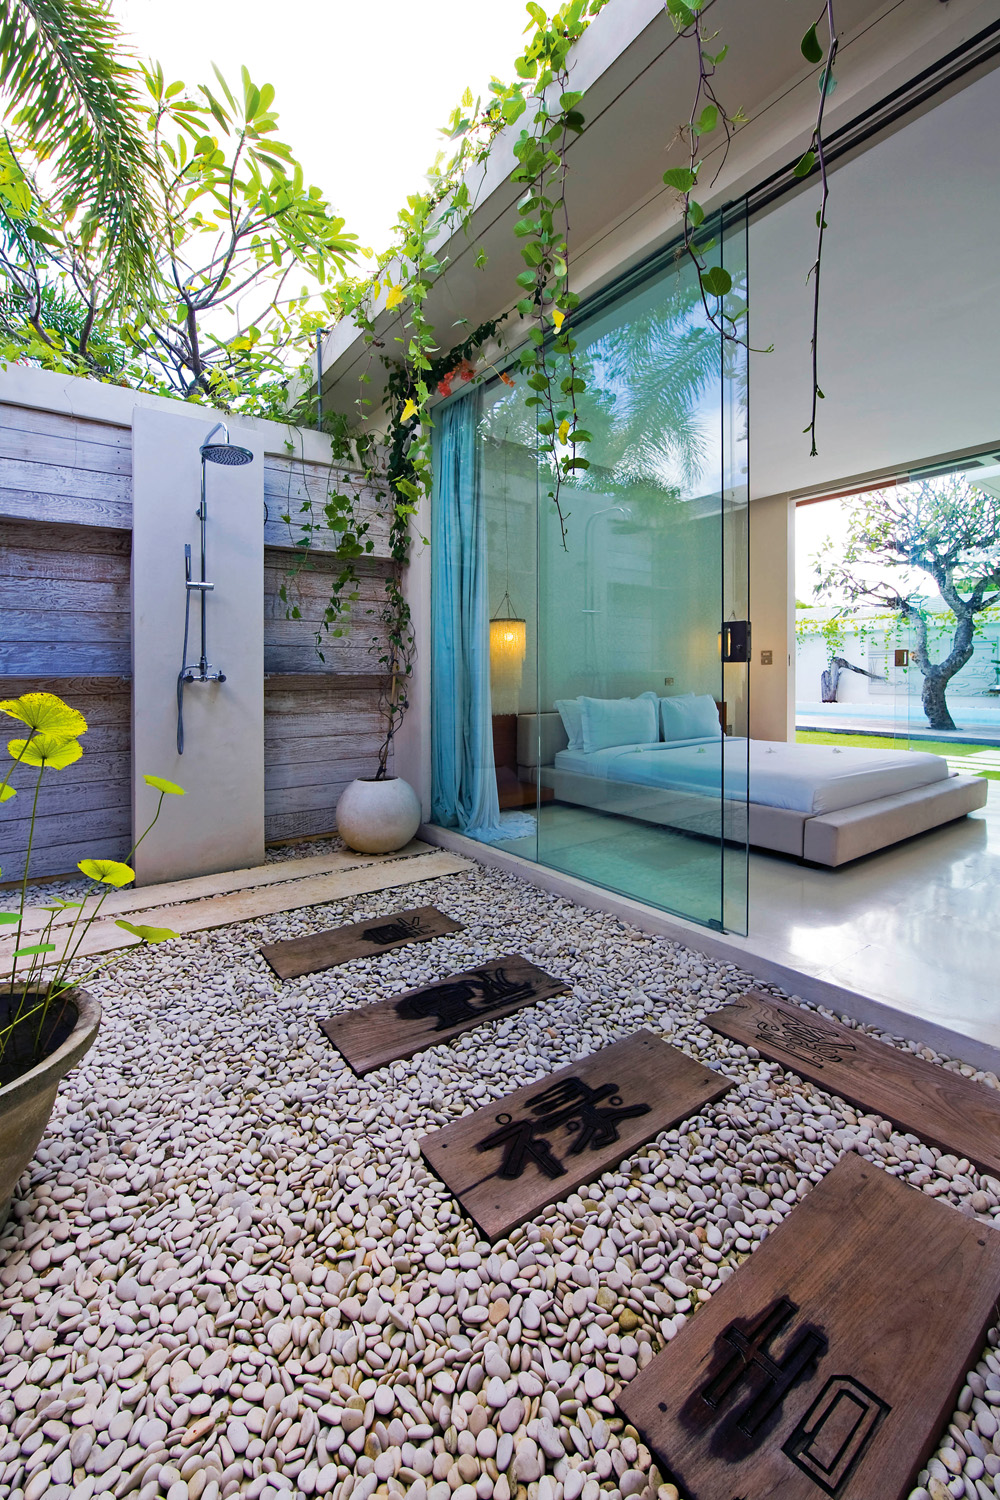 The ultimate outdoor bathroom guide - Completehome on Small Area Bathroom Ideas  id=64857